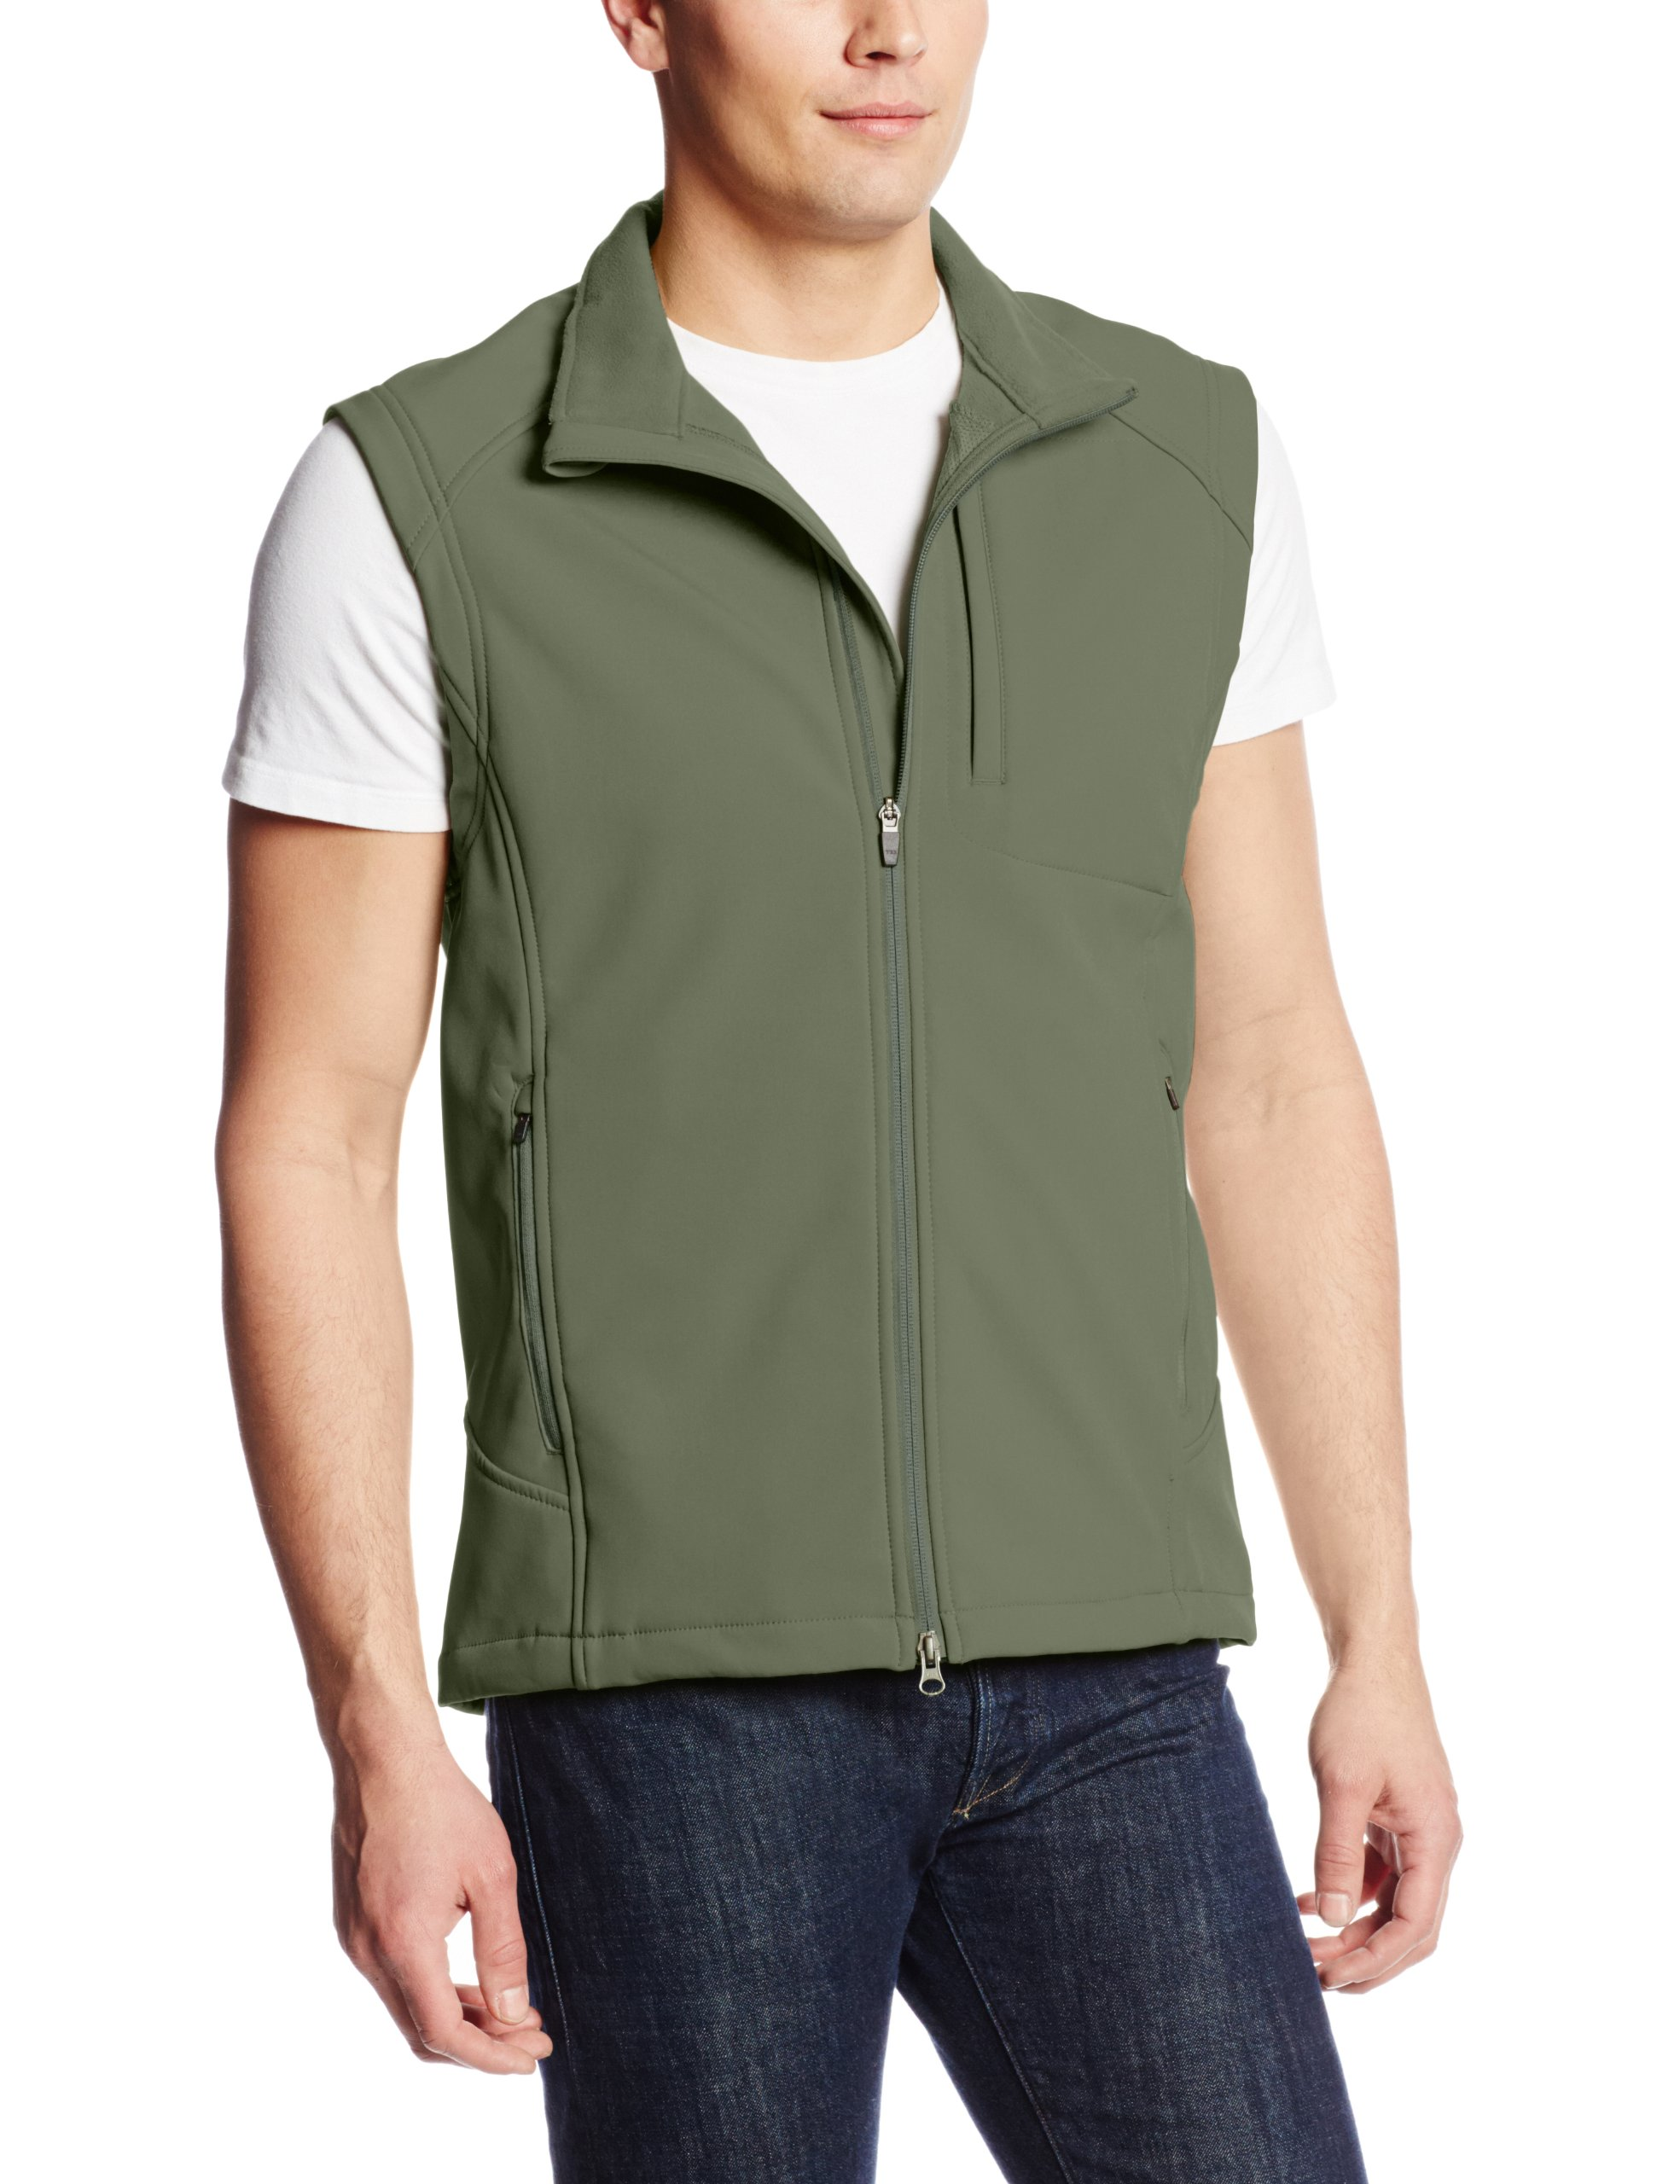 Propper Men's Icon Softshell Vest, Olive, Large by Propper